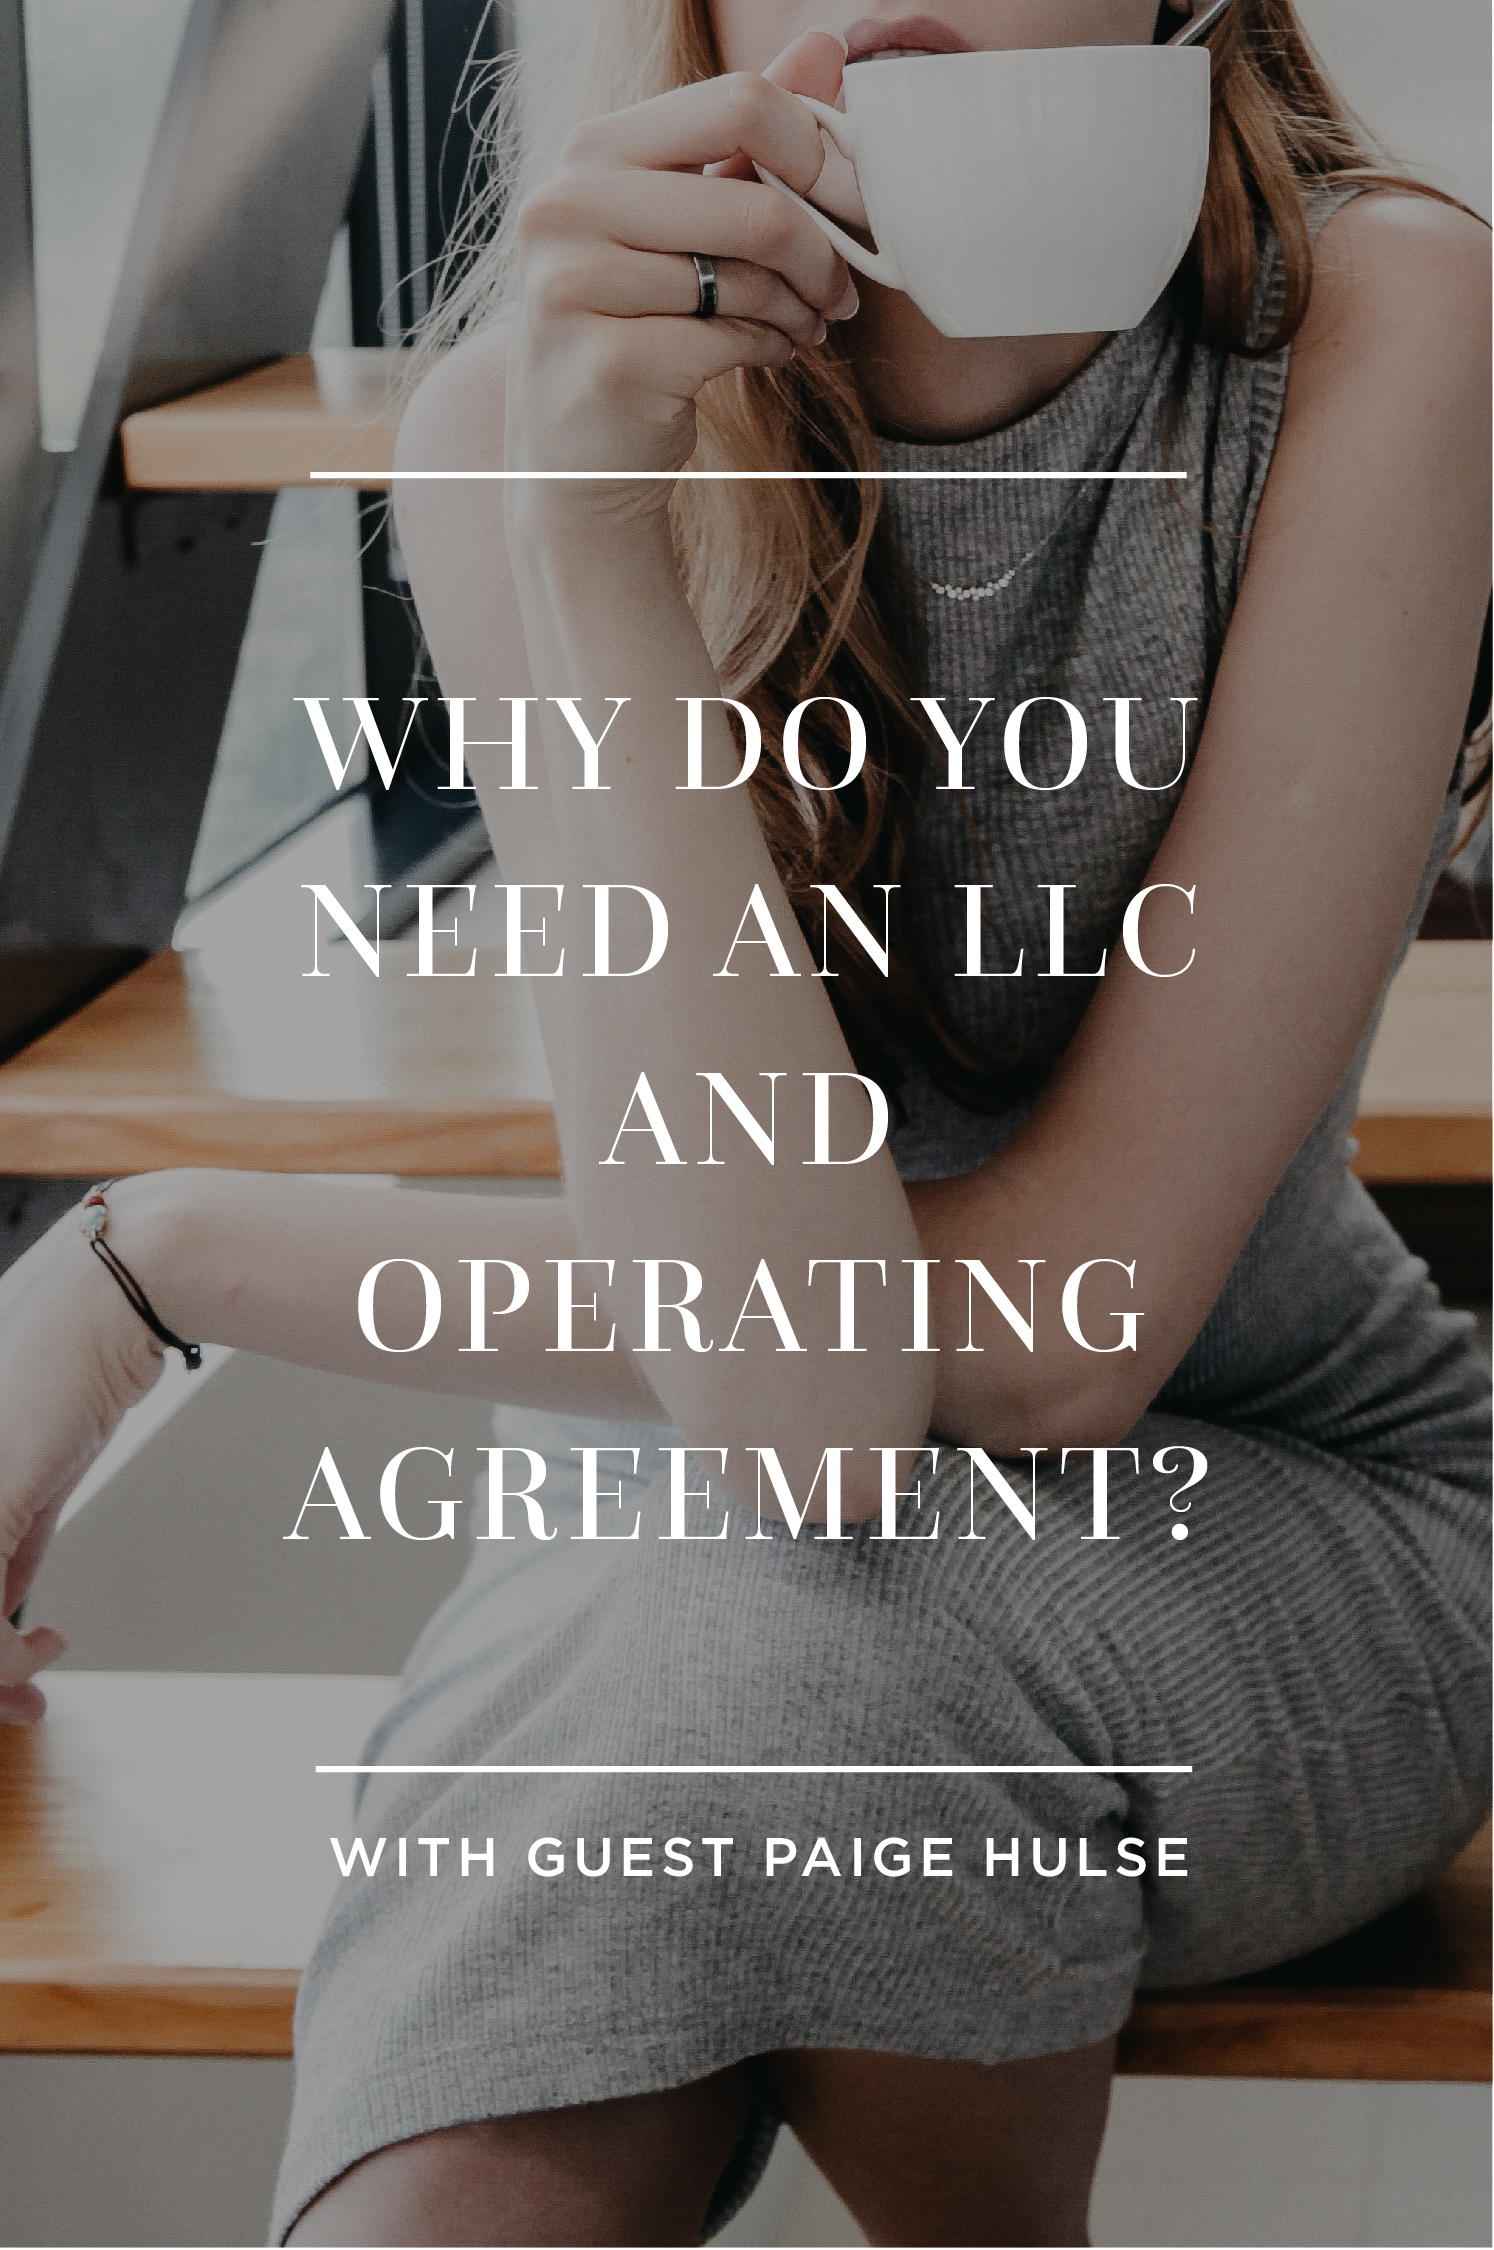 Blogpost-Why do you need an LLC and Operating Agreement-Hayley Bigham Designs-01.jpg